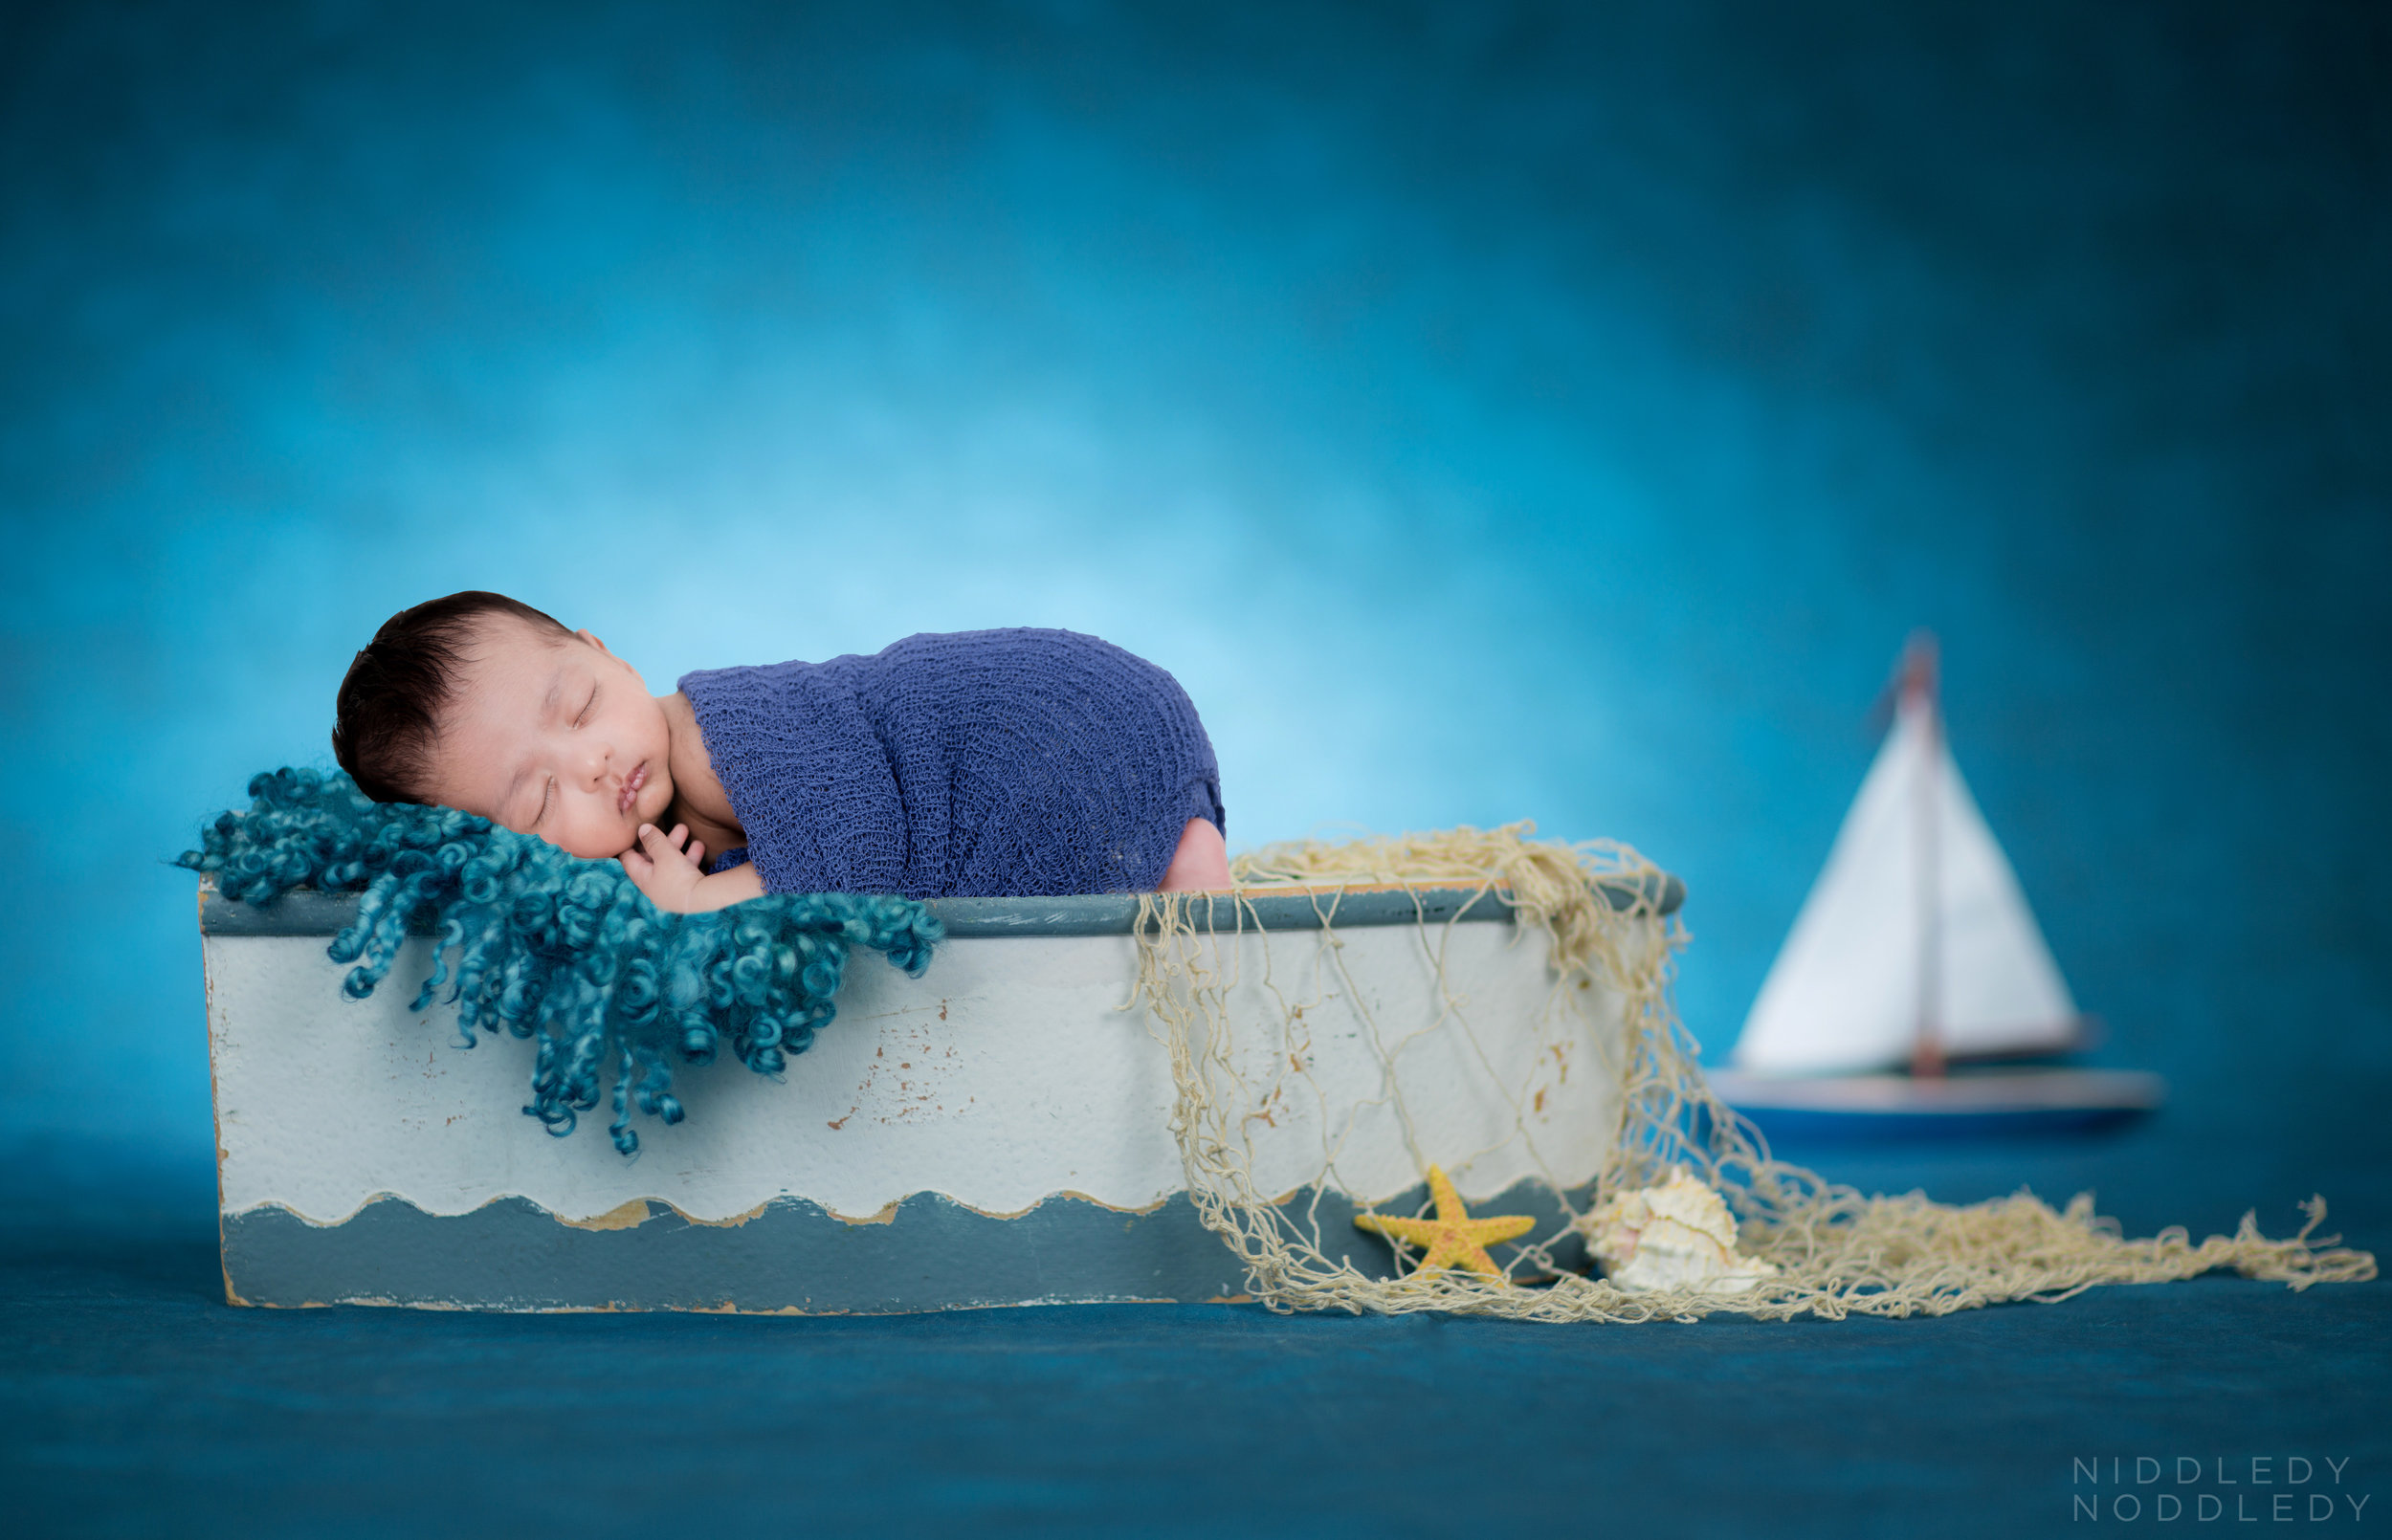 Aarav Bhunia Newborn Photoshoot ❤ NiddledyNoddledy.com ~ Bumps to Babies Photography, Kolkata - 01.jpg